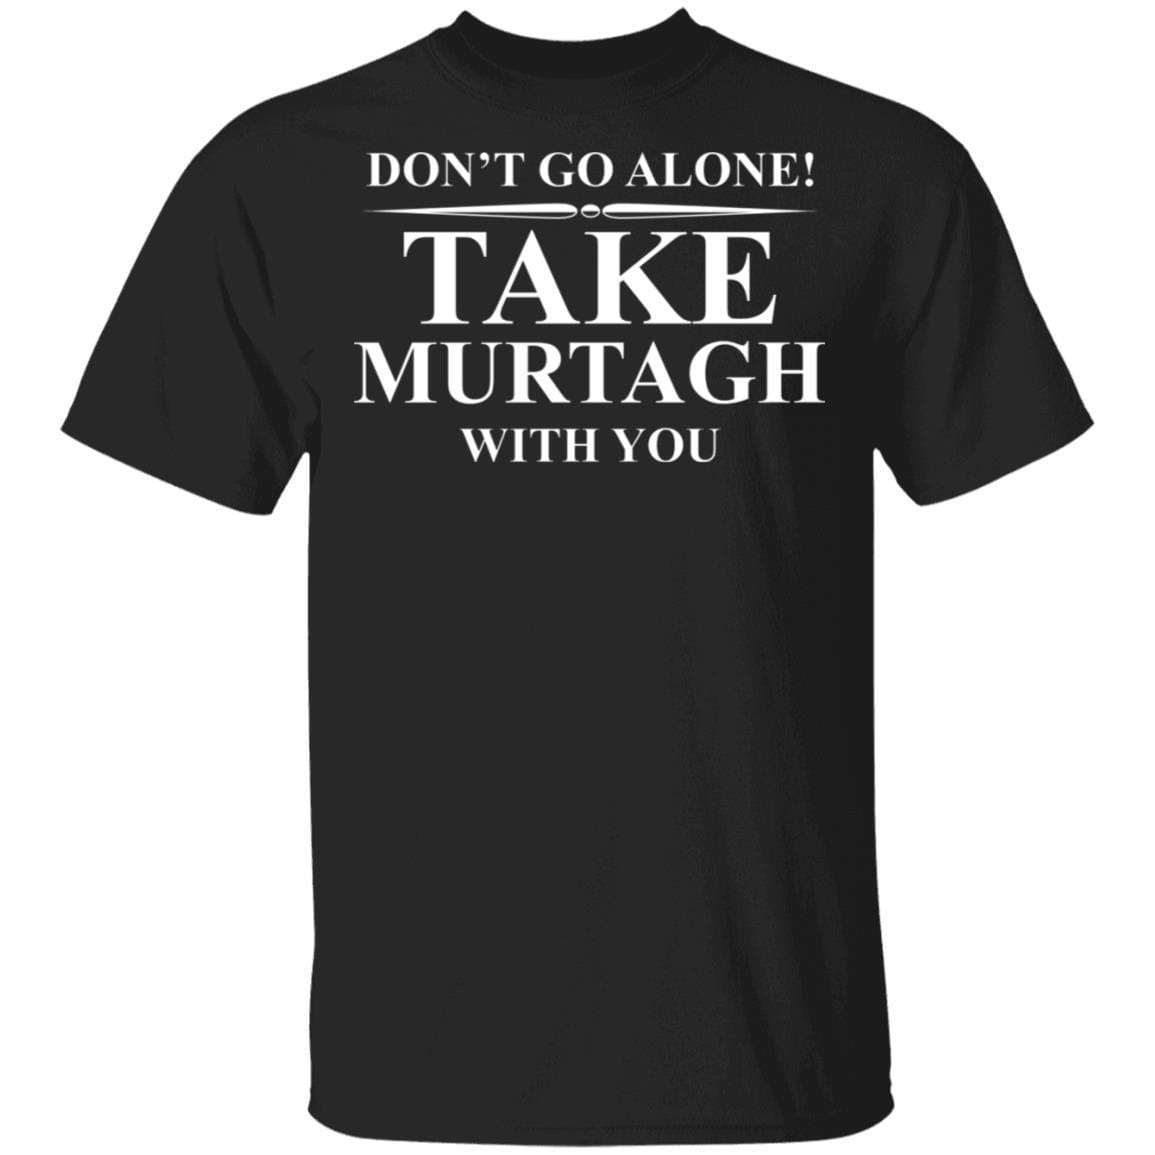 Don't Go Alone Take Murtagh With You T-Shirts, Hoodies 1049-9953-92796760-48144 - Tee Ript